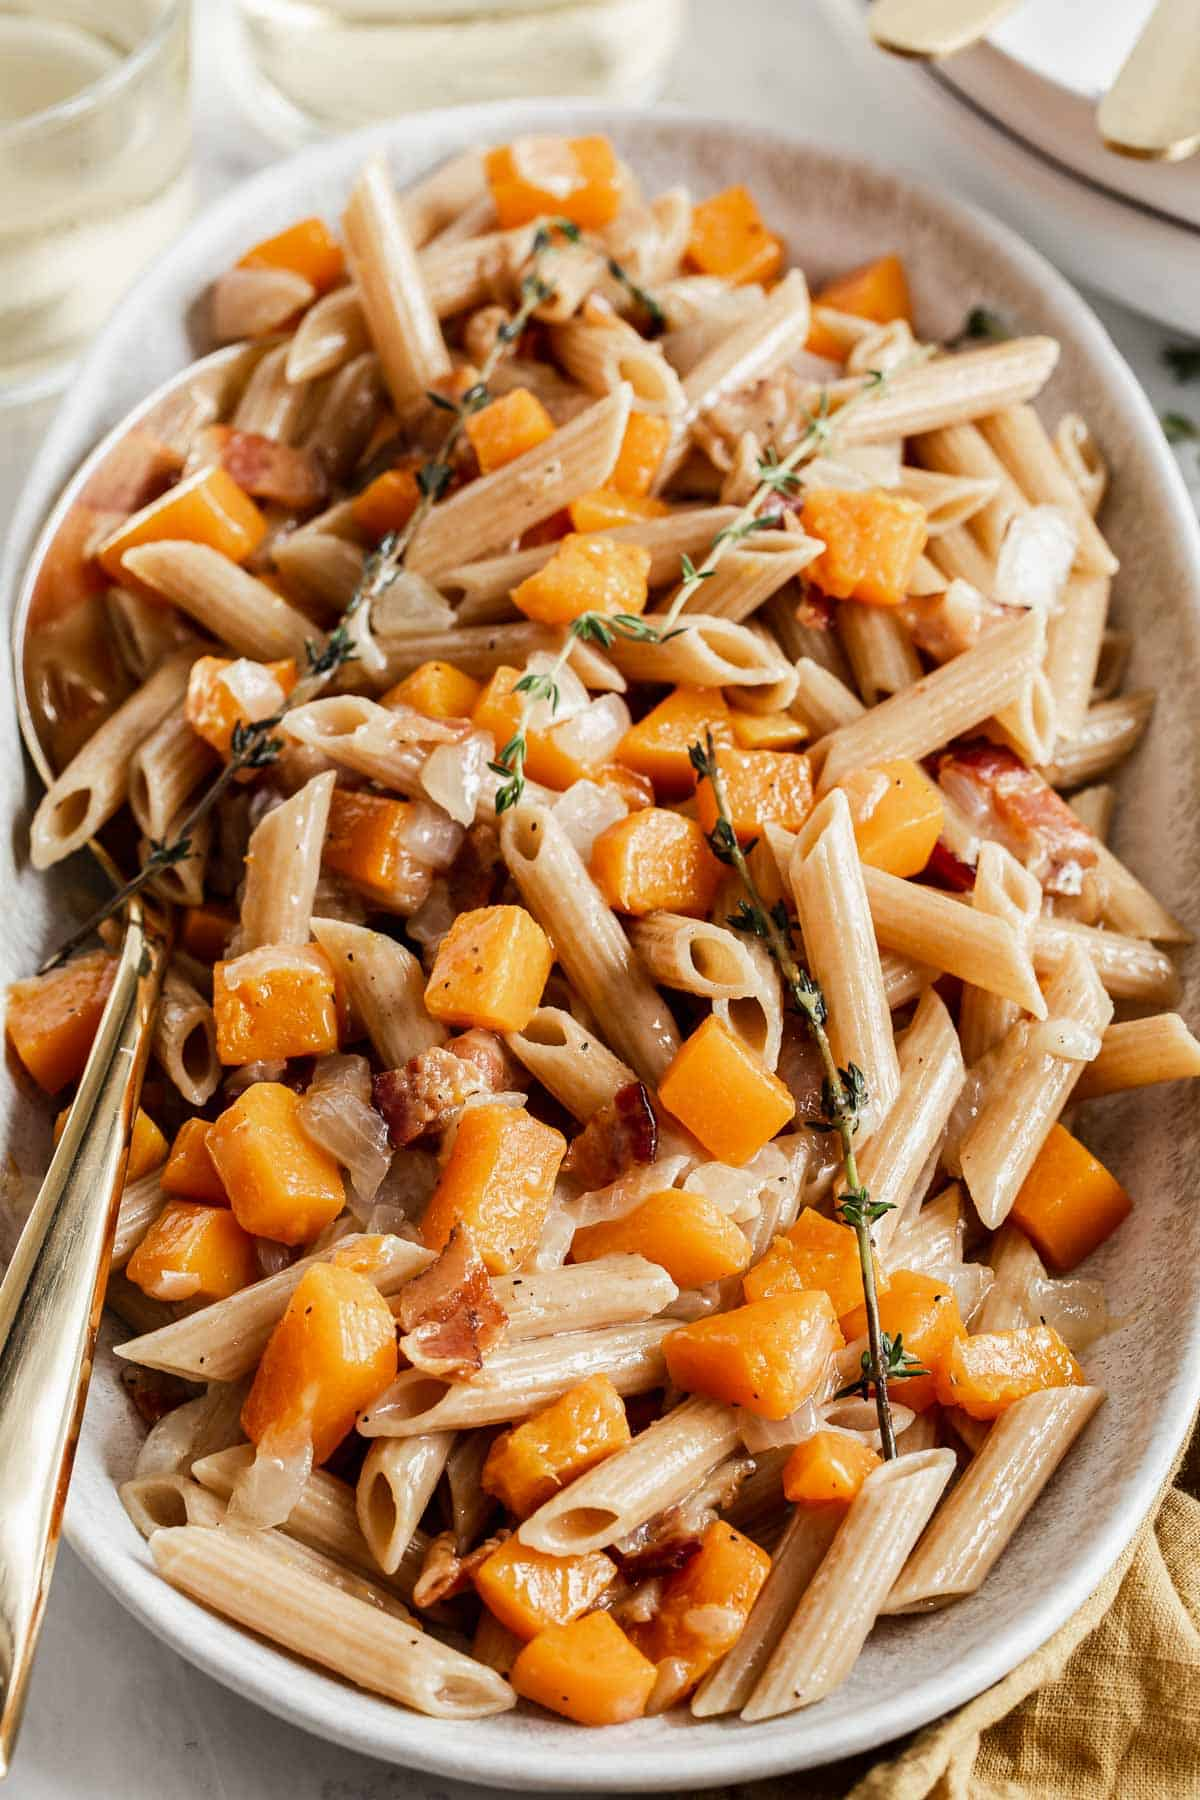 Serving tray of penne pasta with butternut squash and bacon.